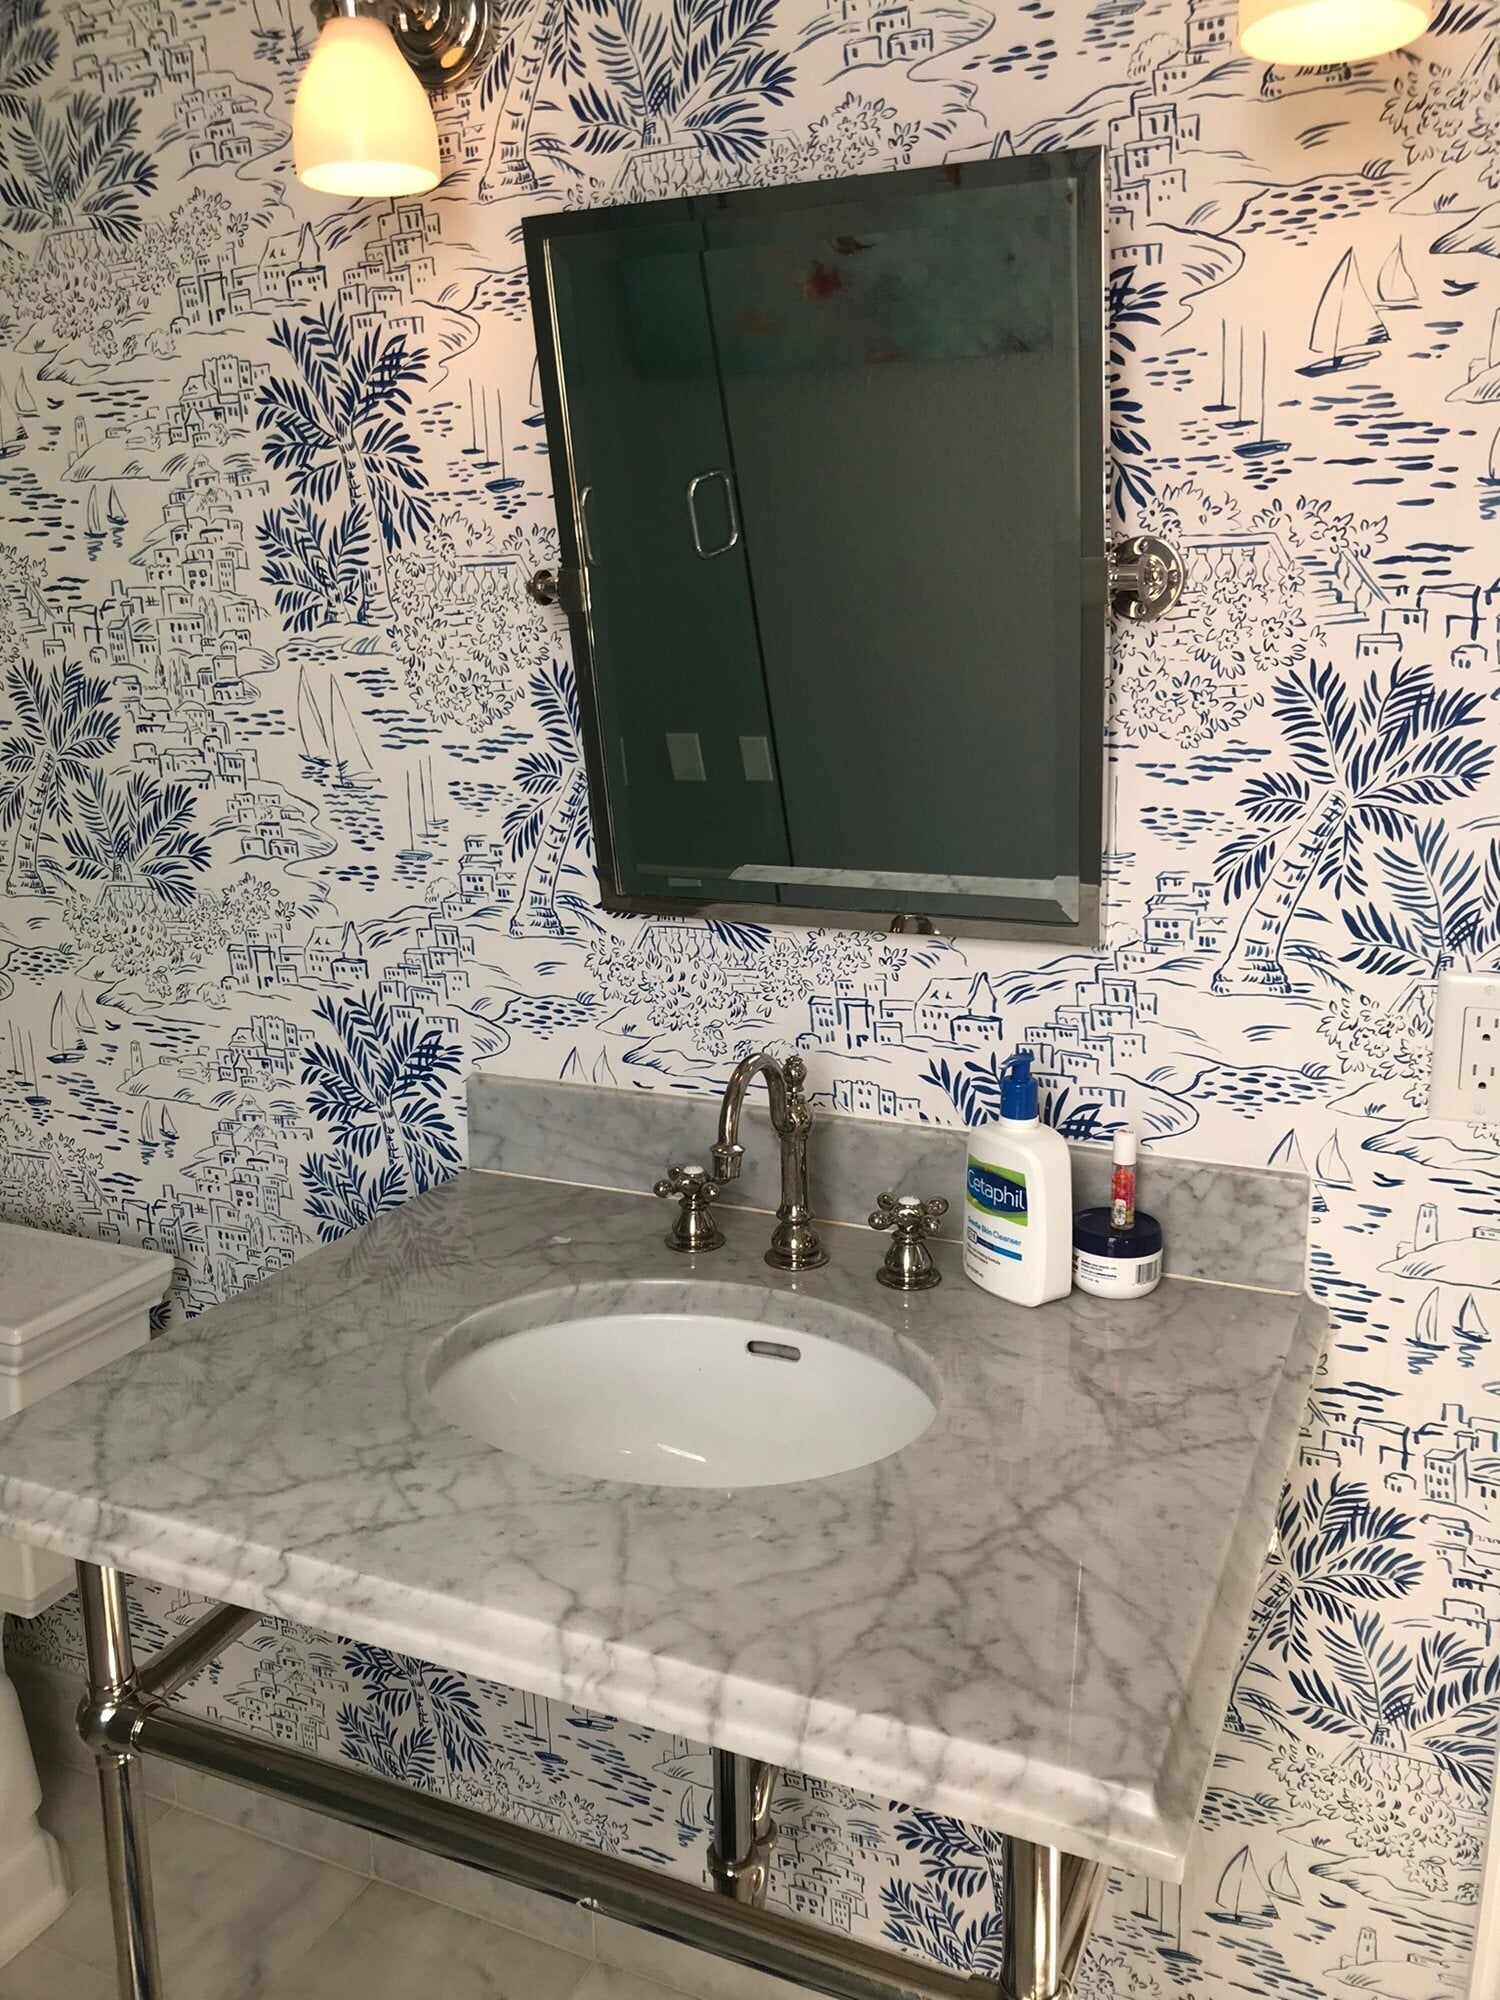 Bathroom wallcovering in Palm Beach Gardens, FL from Floors For You Kitchen & Bath